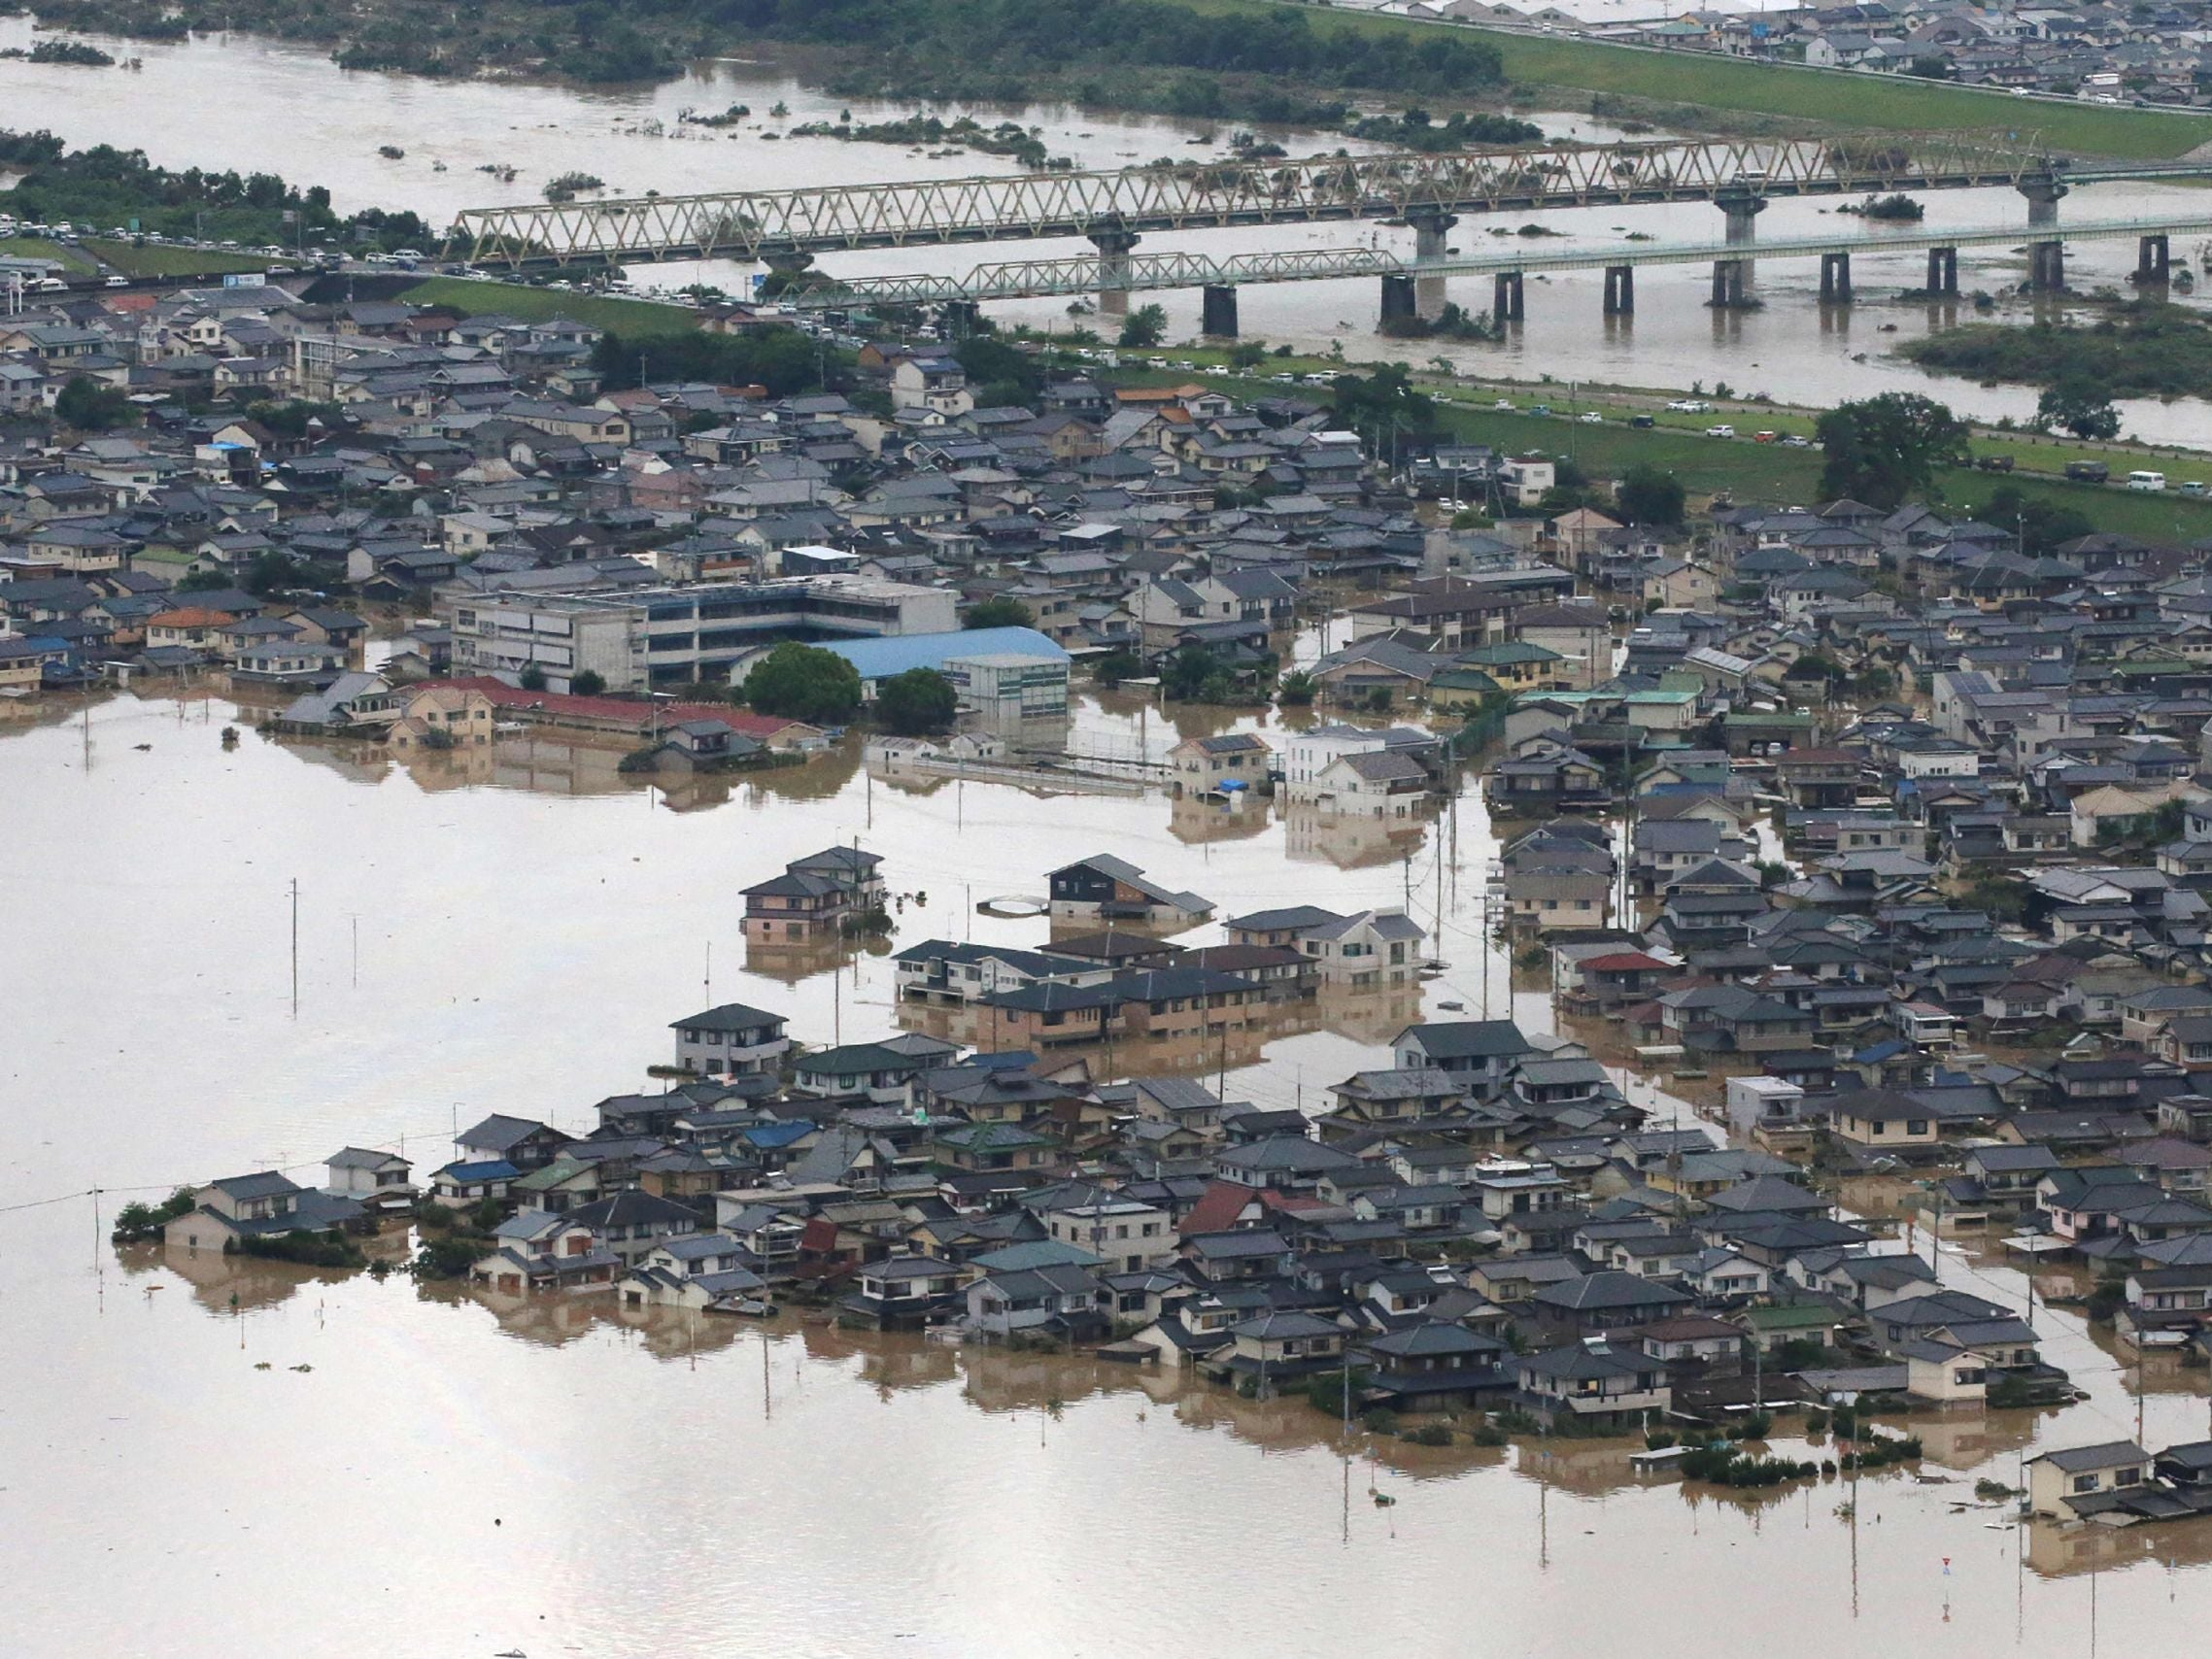 Japan floods: At least 155 killed in worst weather disaster in 36 years